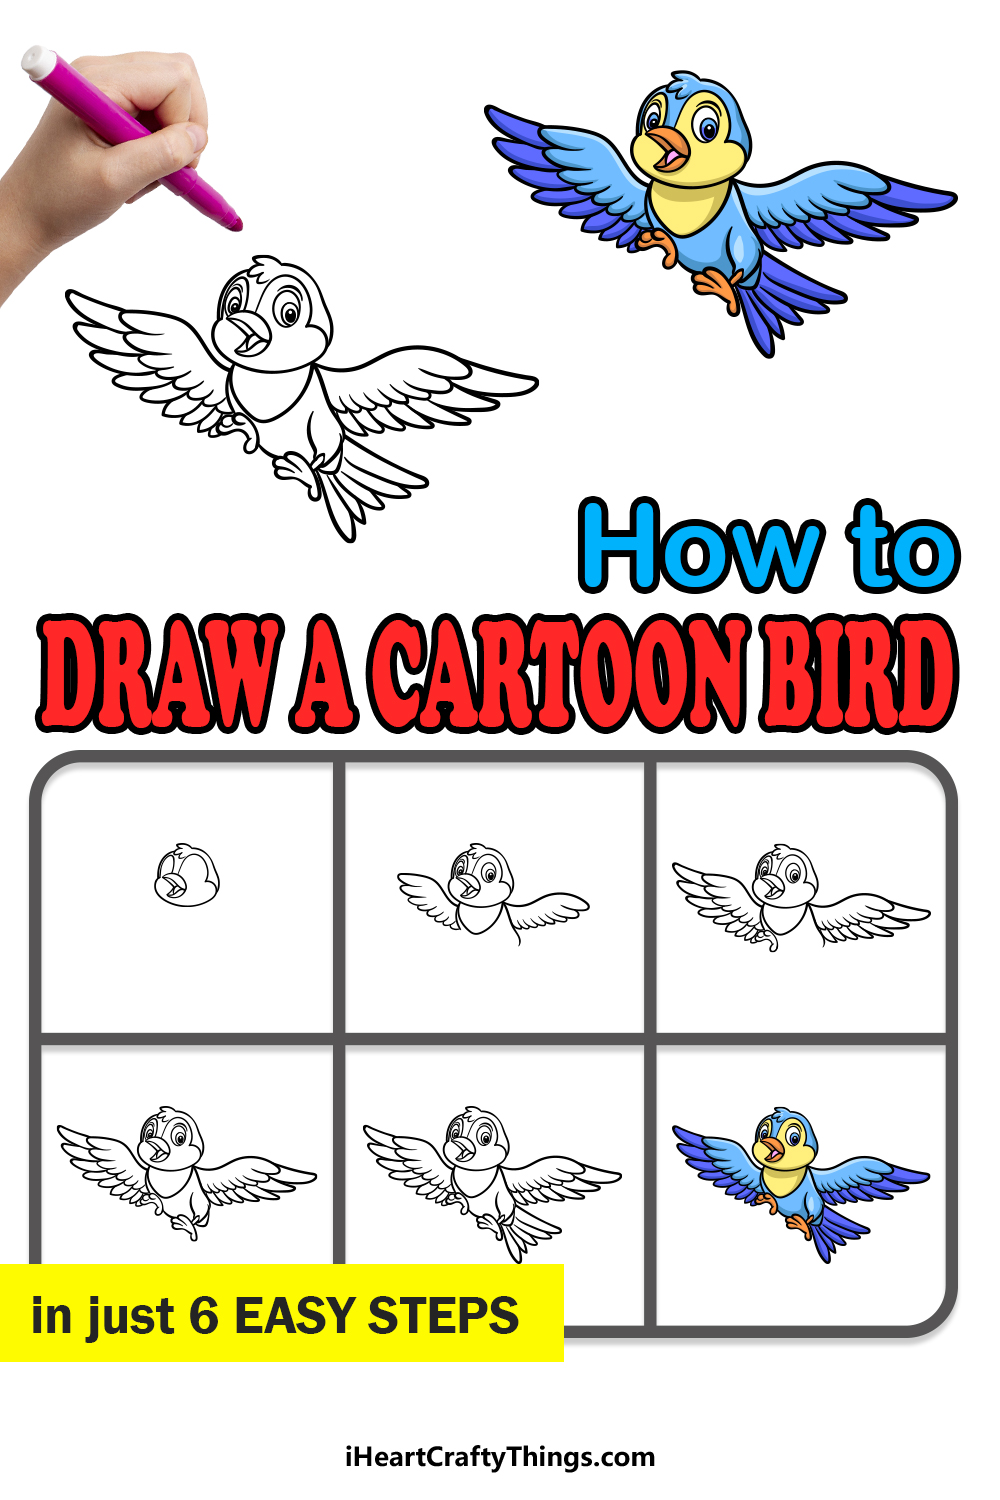 how to draw a cartoon bird in 6 easy steps